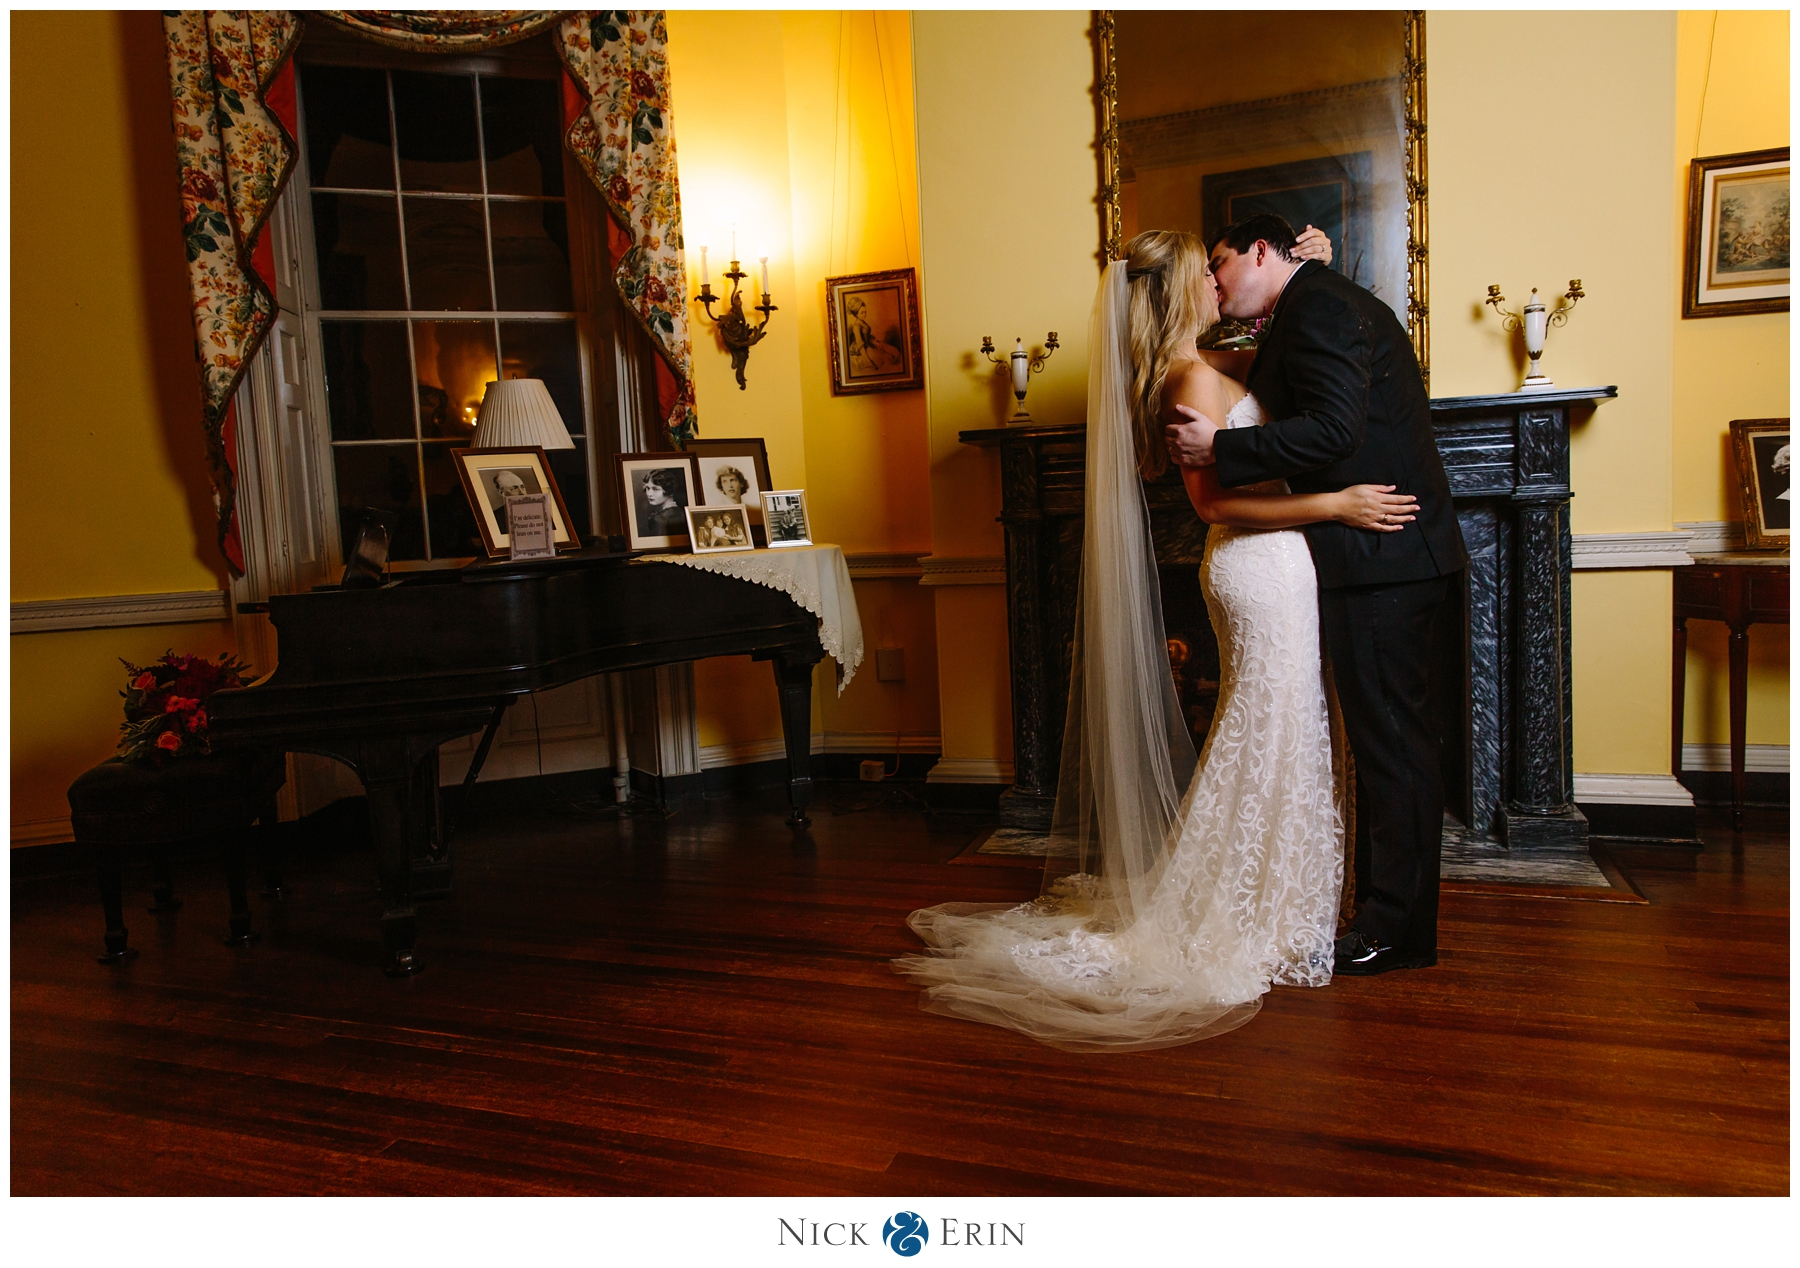 donner_photography_leesburg-virginia-wedding_erin-stuart_0002